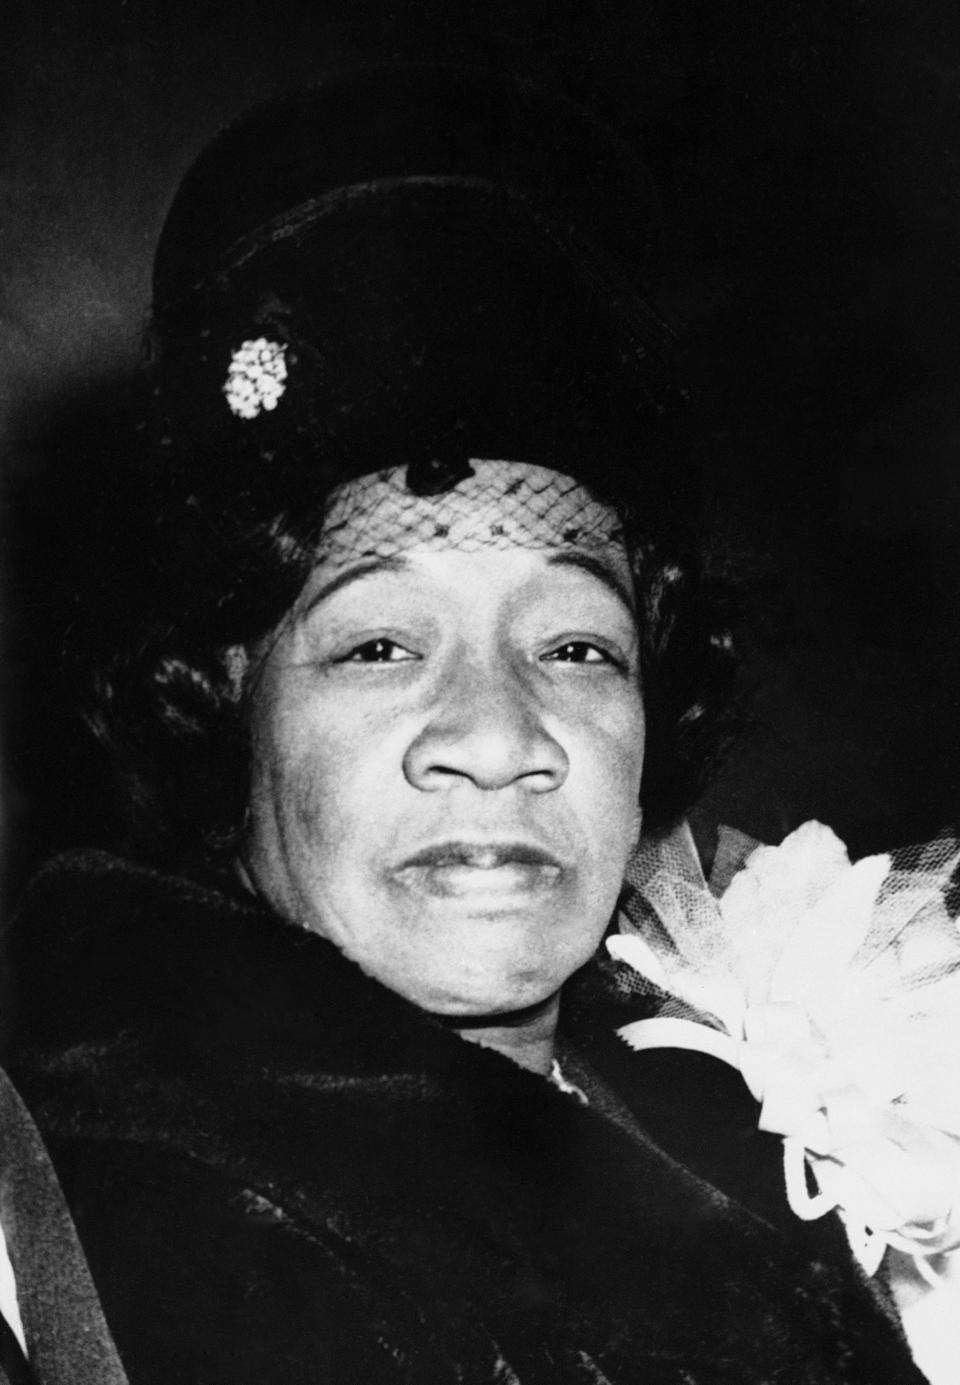 Mrs. King's influence on Dr. Martin Luther King Jr.'s activism is explored in the new book The Three Mothers by Anna Malaika Tubbs.